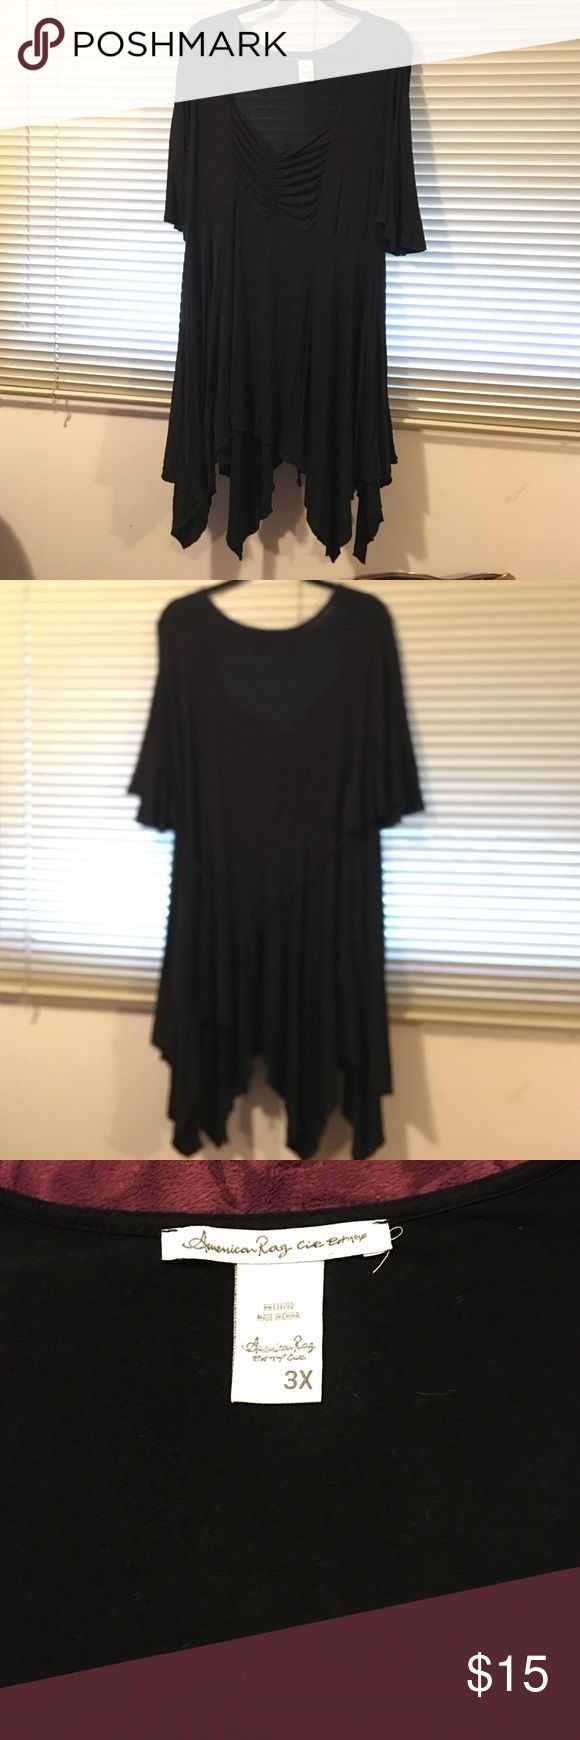 Tunic with zig zag hem. Brand new never worn (too big) black long tunic with uneven hem. Bought from Macy's, true to size 3X. Would look great with leggings and boots. Cute string tie in back. American Rag Tops Tunics